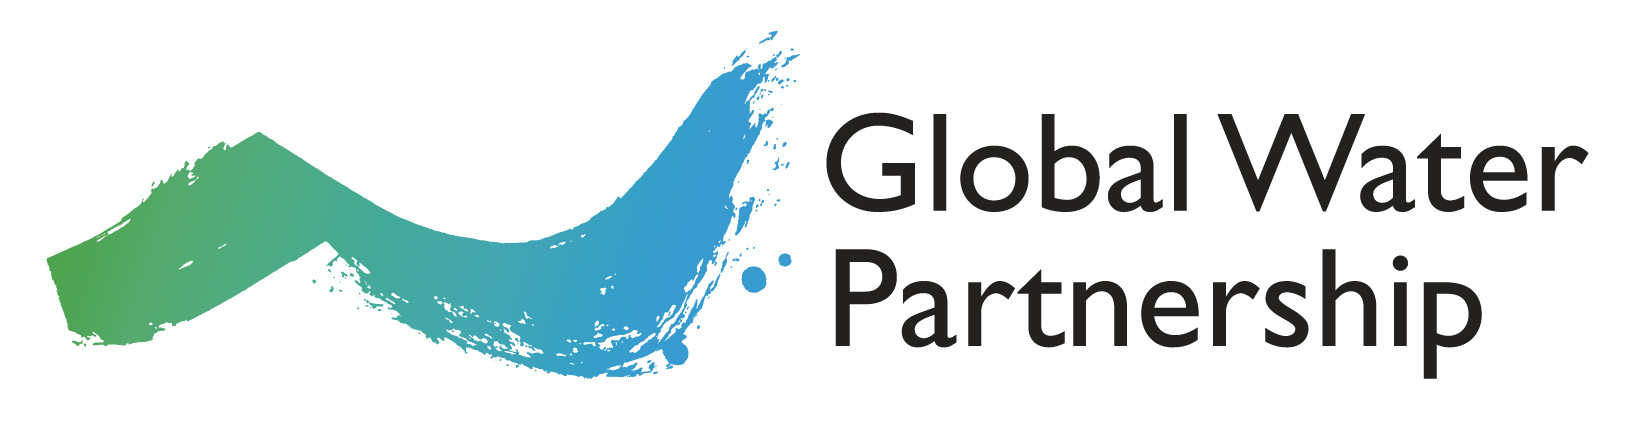 logo for Global Water Partnership